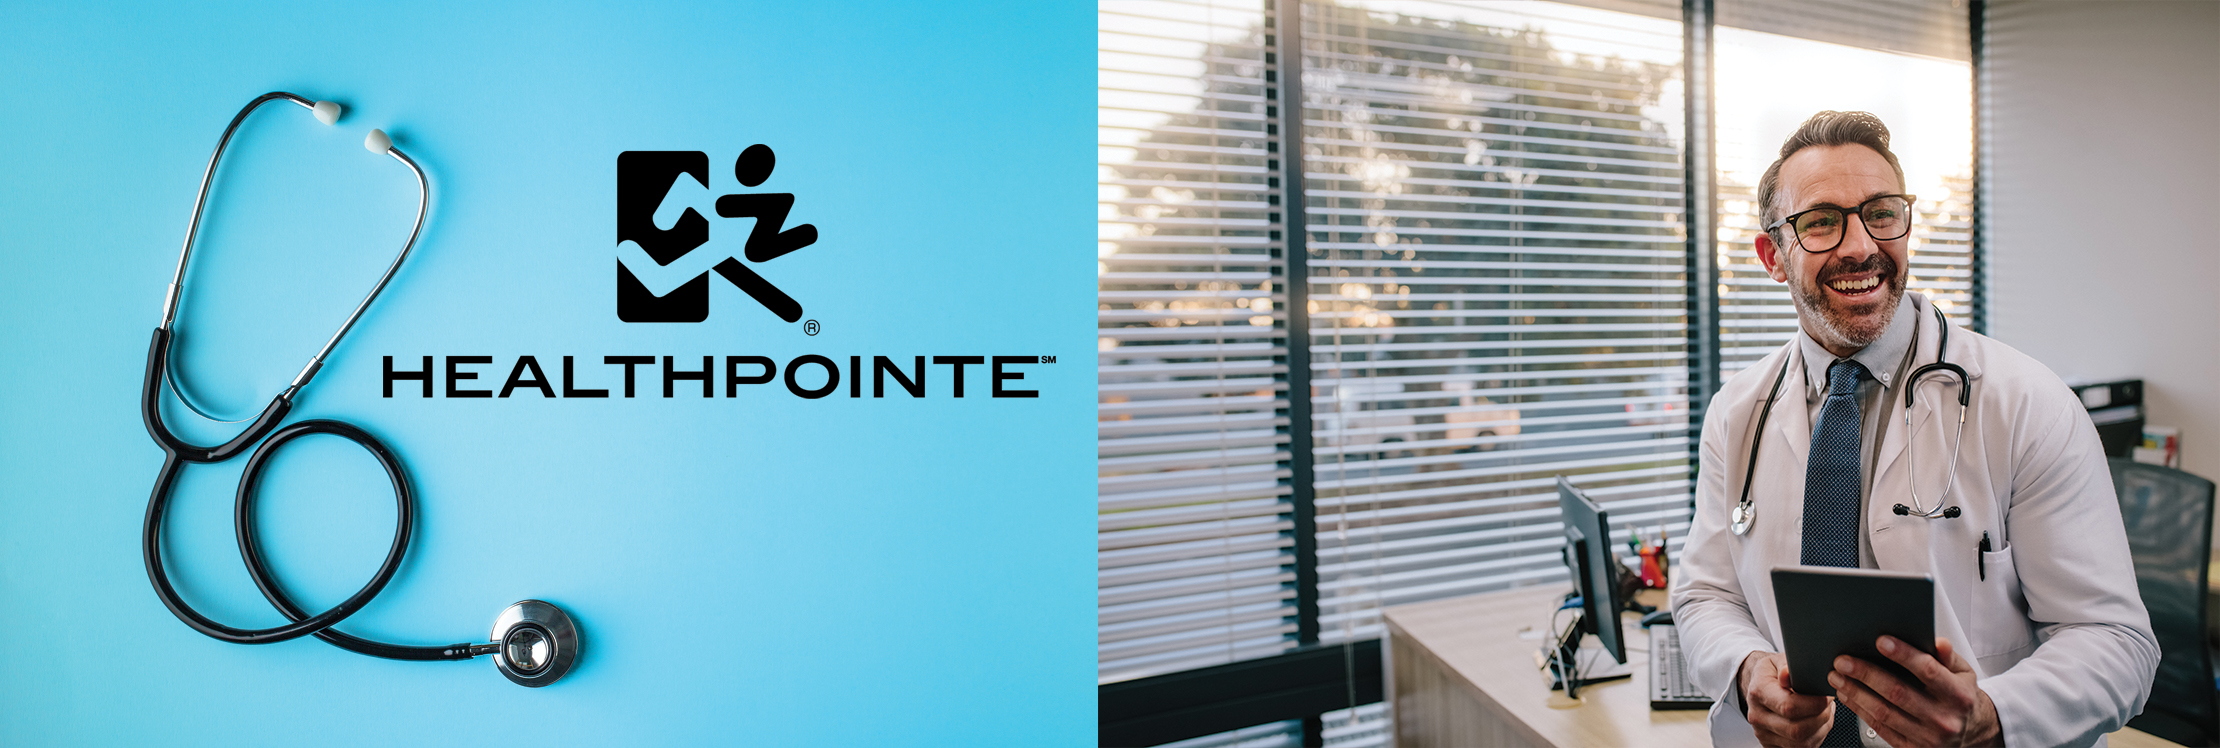 Healthpointe reviews   Medical Centers at 754 N Mountain Ave - Ontario CA